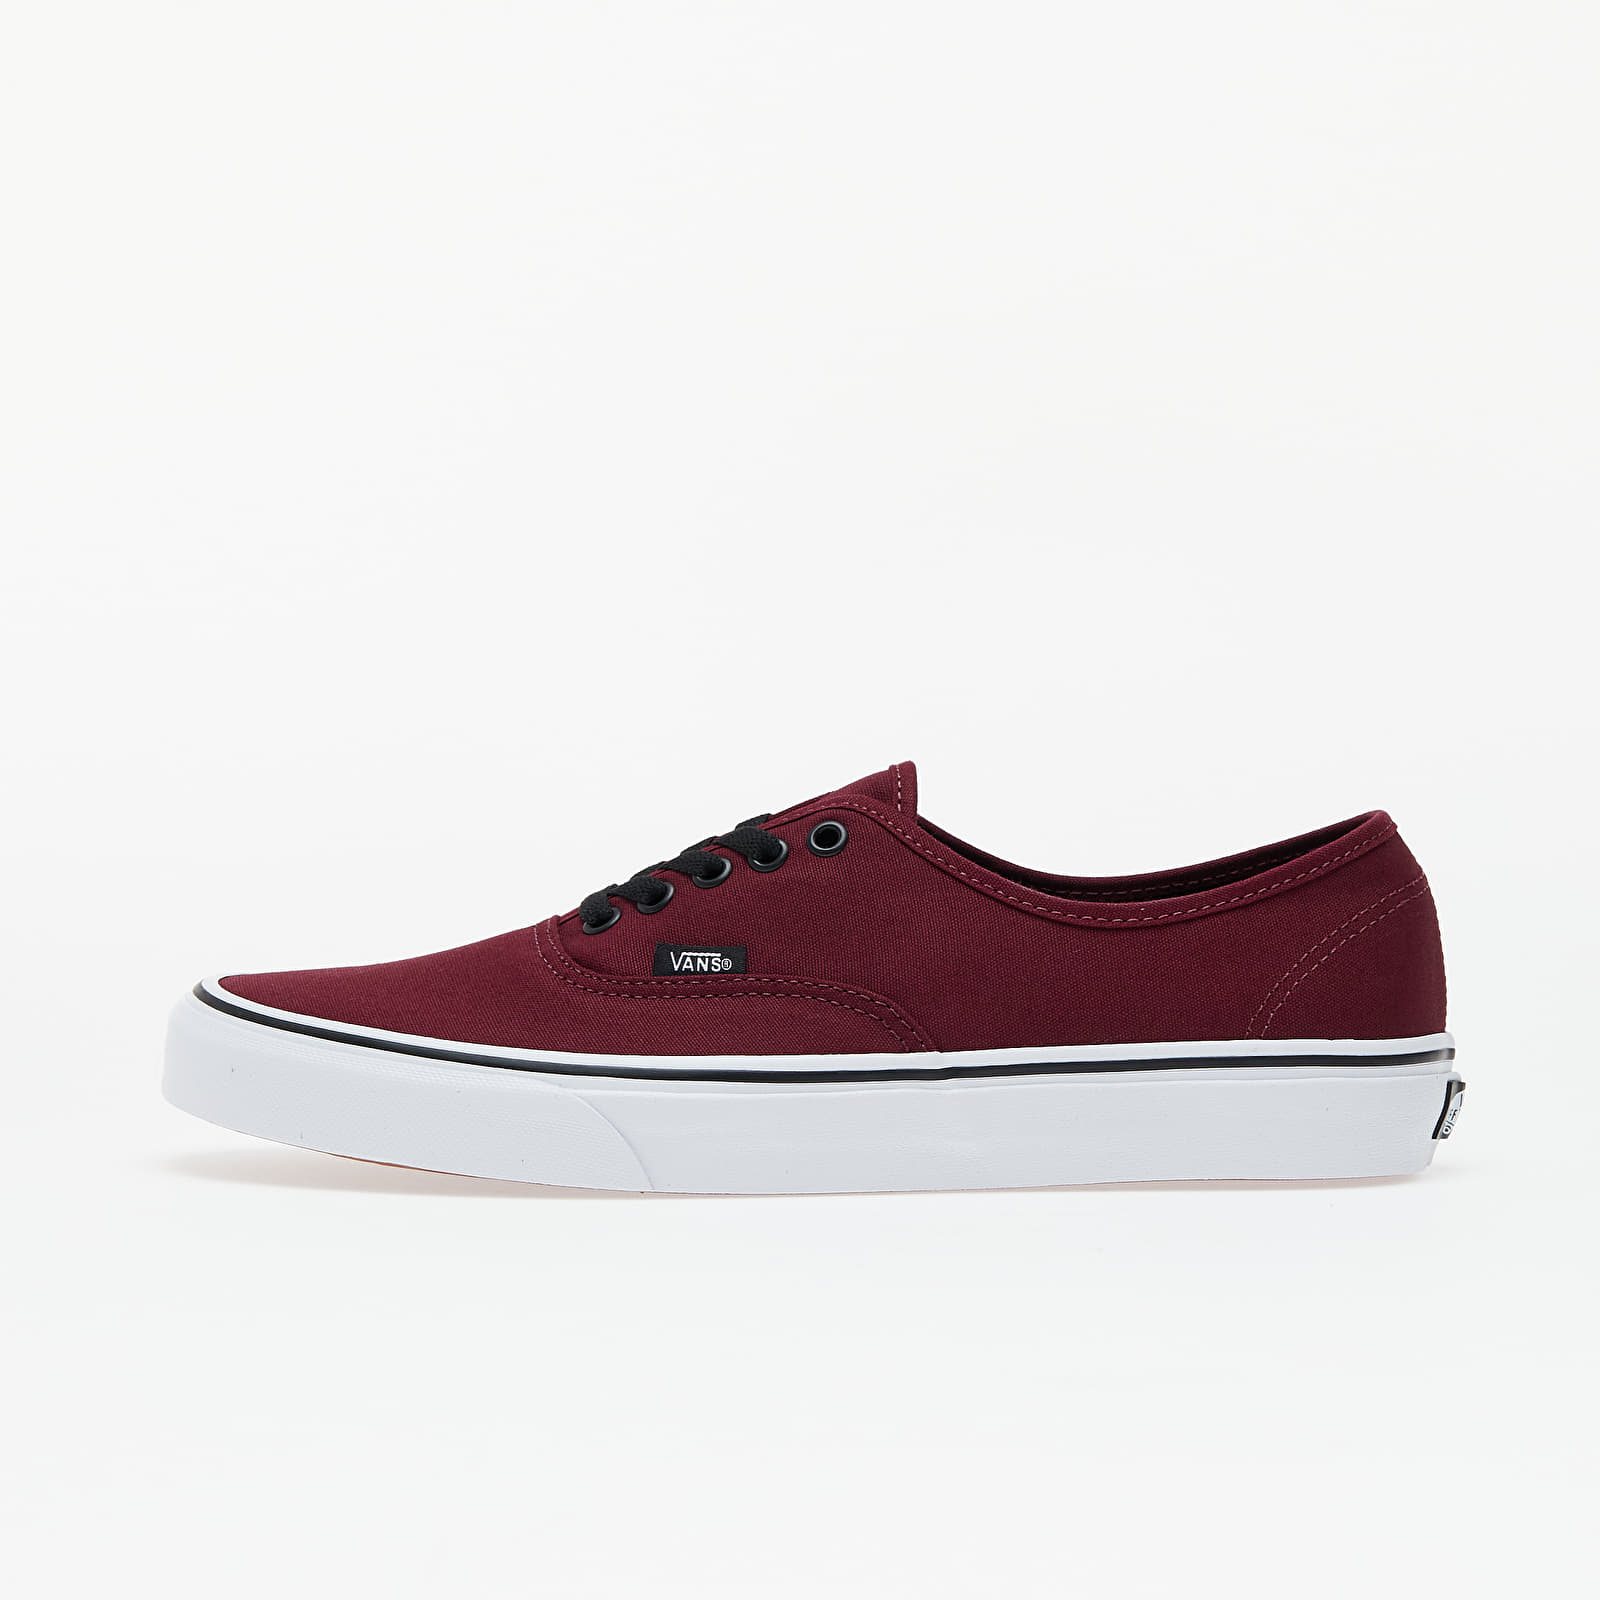 Men's shoes Vans Authentic Port Royale/Black